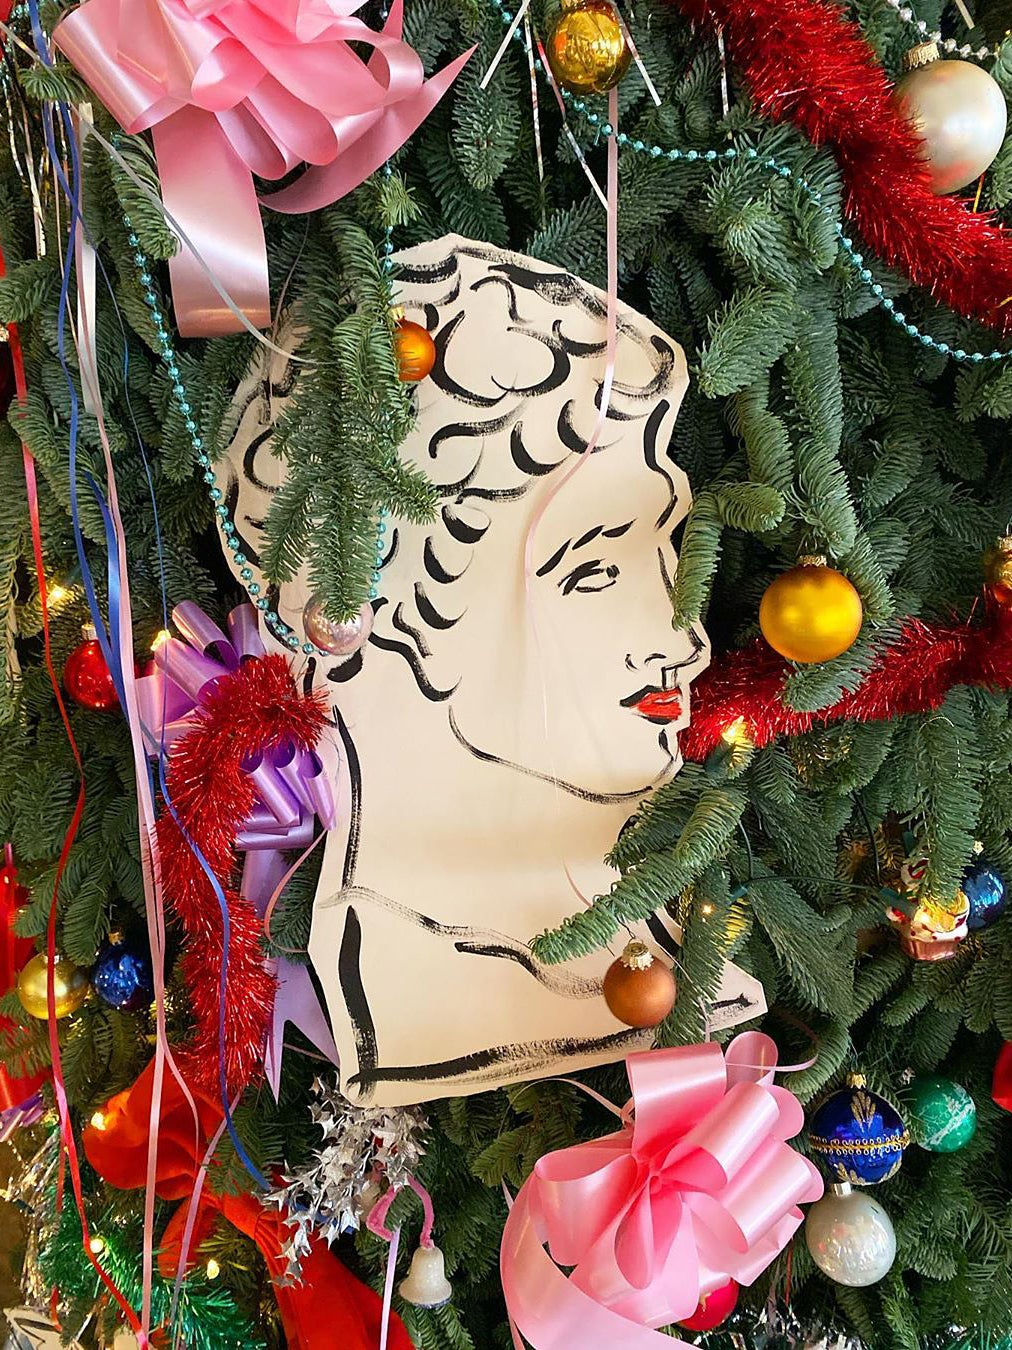 drawing of bust as tree decoration